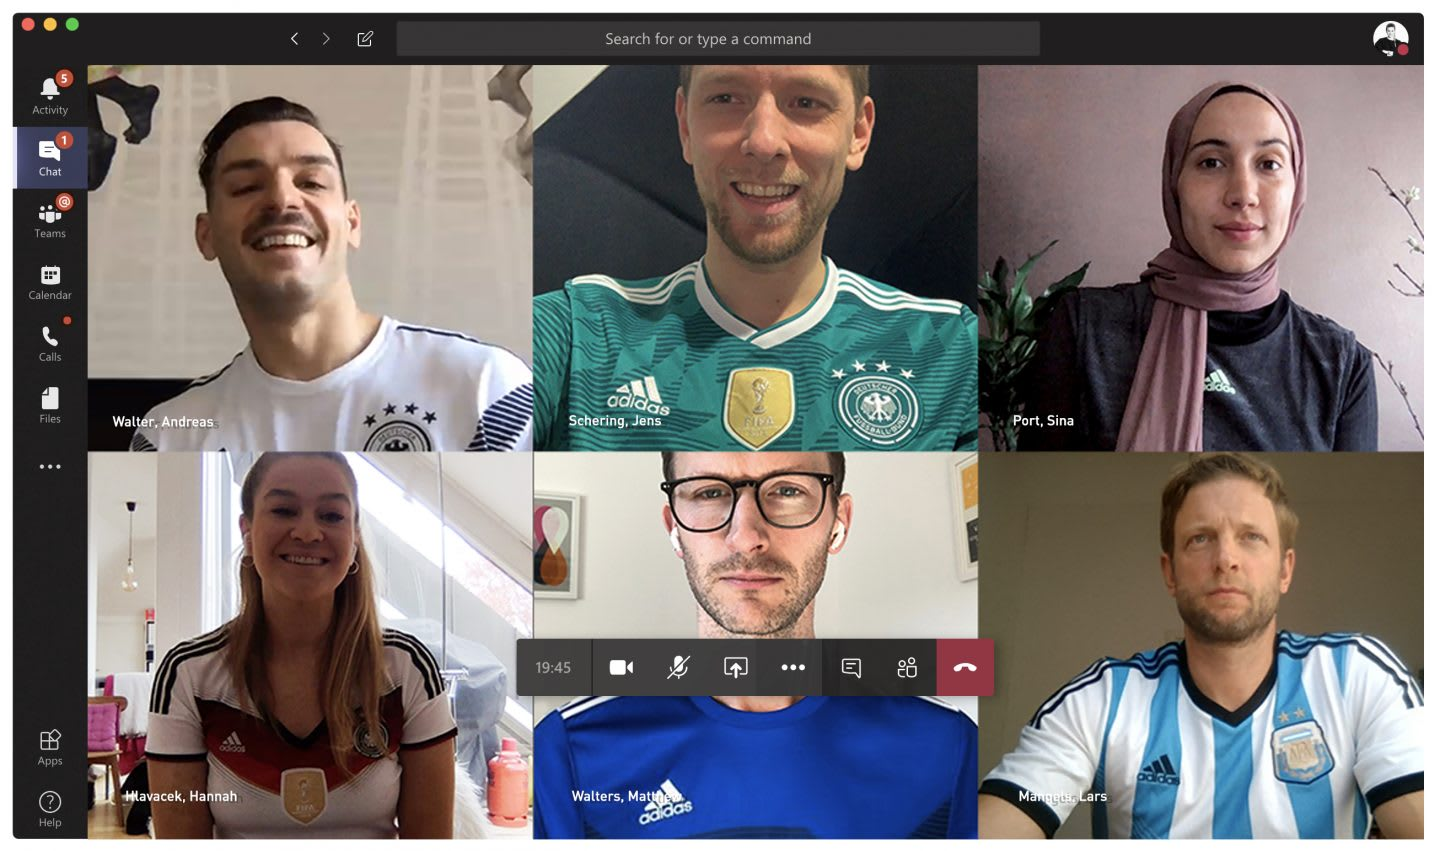 Team wearing football jerseys during a video conference call, teamwork, collaboration, creativity, video, GamePlan A